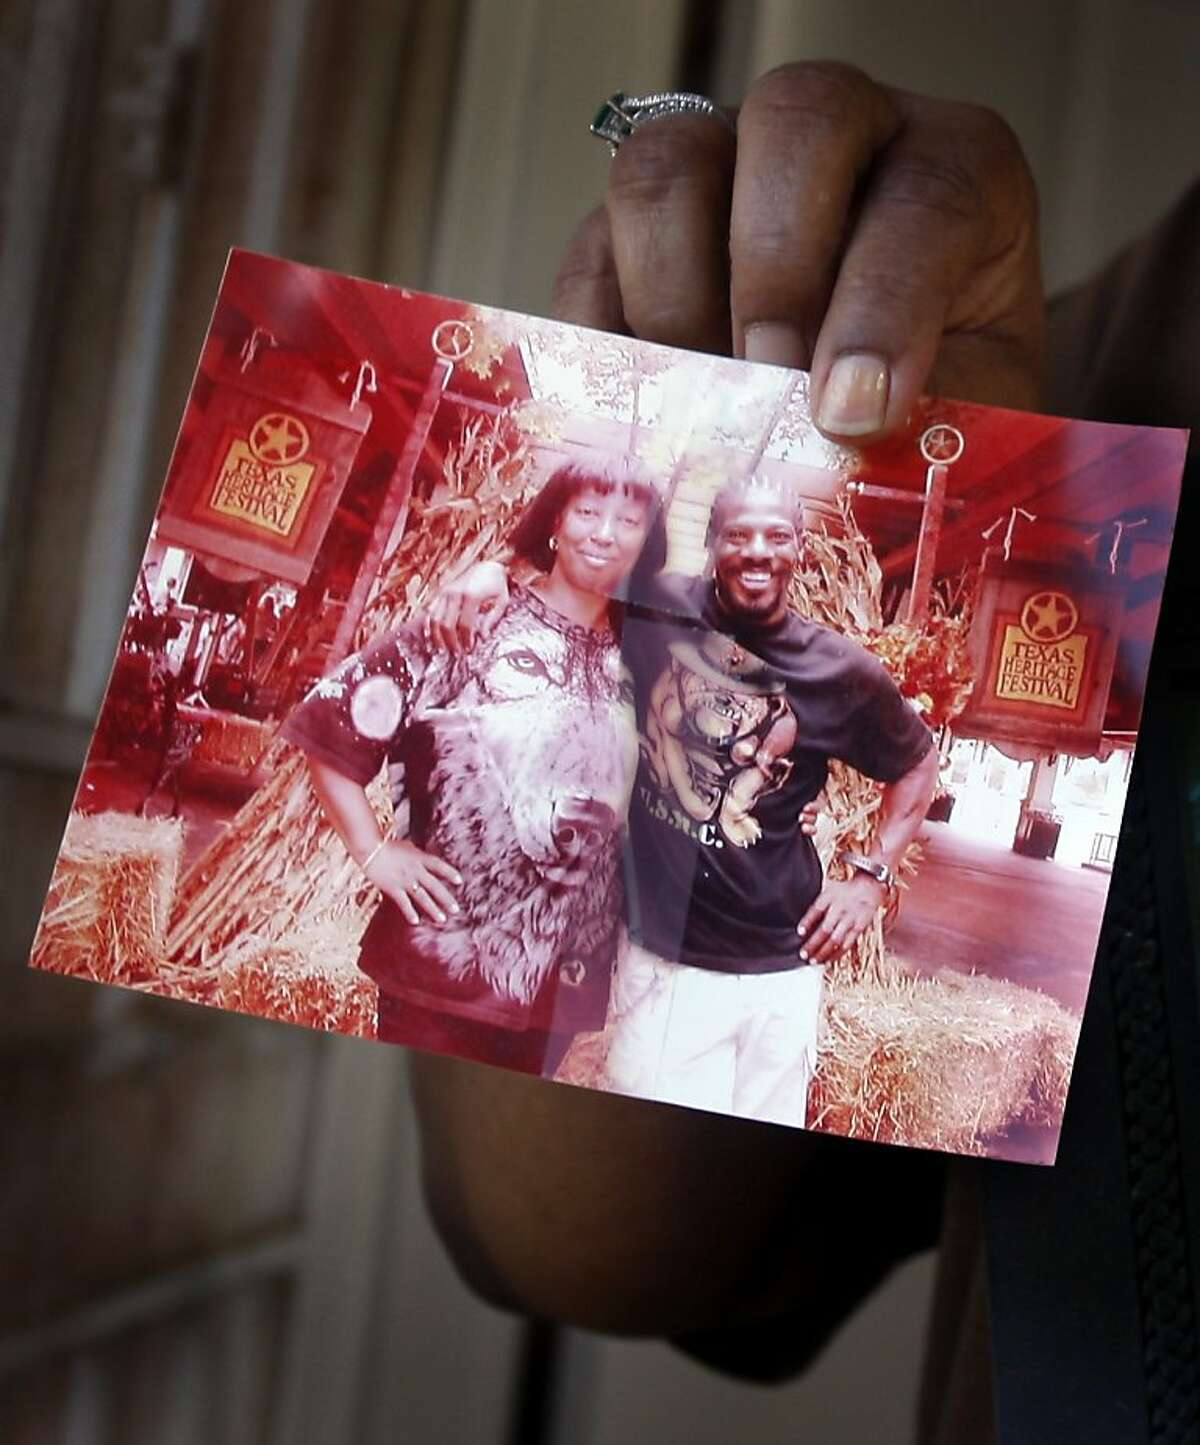 Tyrice Ross holds a photo of her sister Deborah Ross and Nathaniel Burris at the home the couple shared in Richmond, Calif., on Wednesday, Aug. 12, 2009 on the morning after Burris reportedly killed Deborah Ross and her friend Ersie Charles Everette at the Richmond-San Rafael Bridge toll plaza. Authorities took Burris into custody early Wednesday morning in Placer County.